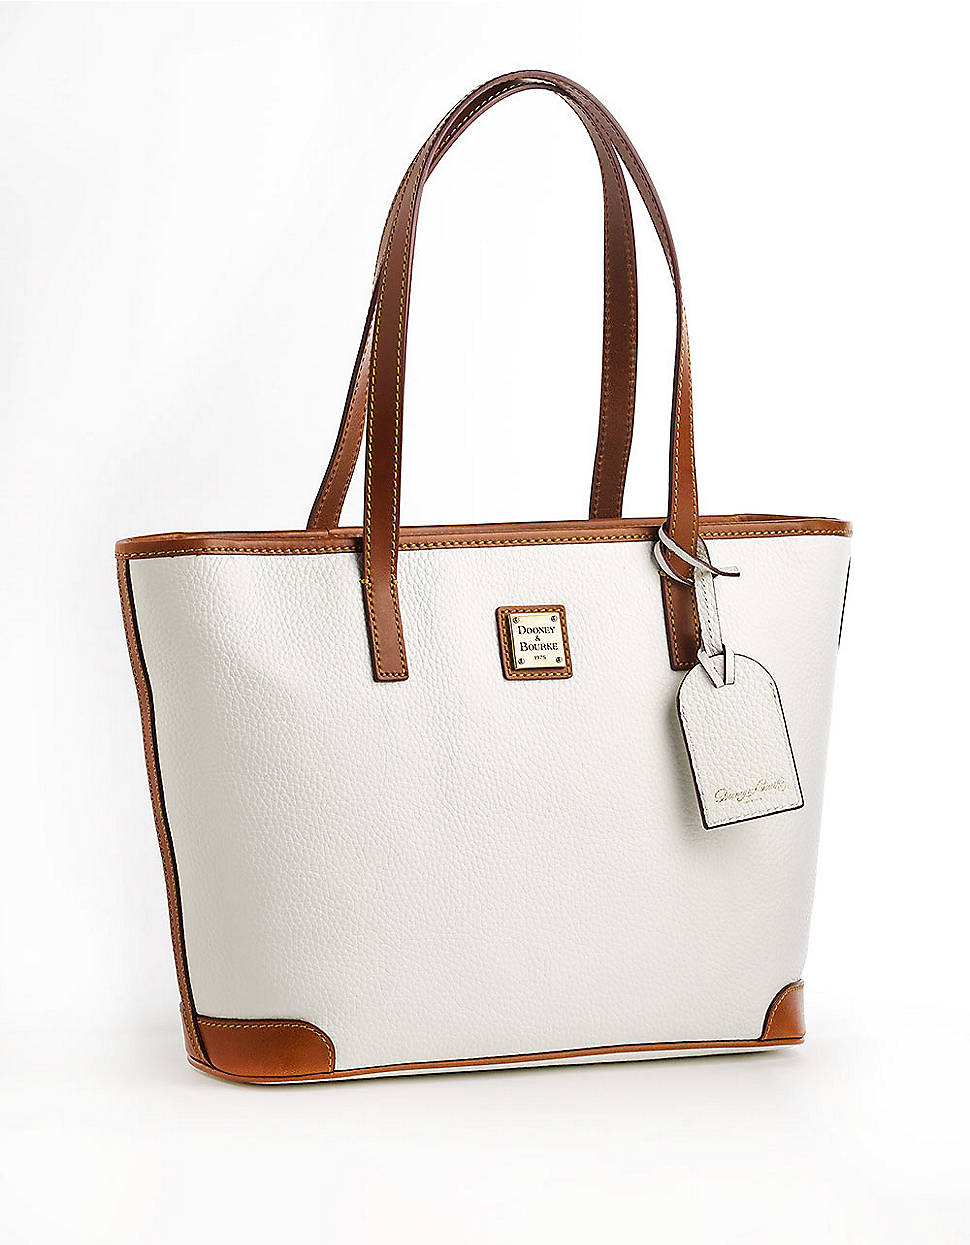 dooney bourke charleston shopper leather tote bag in